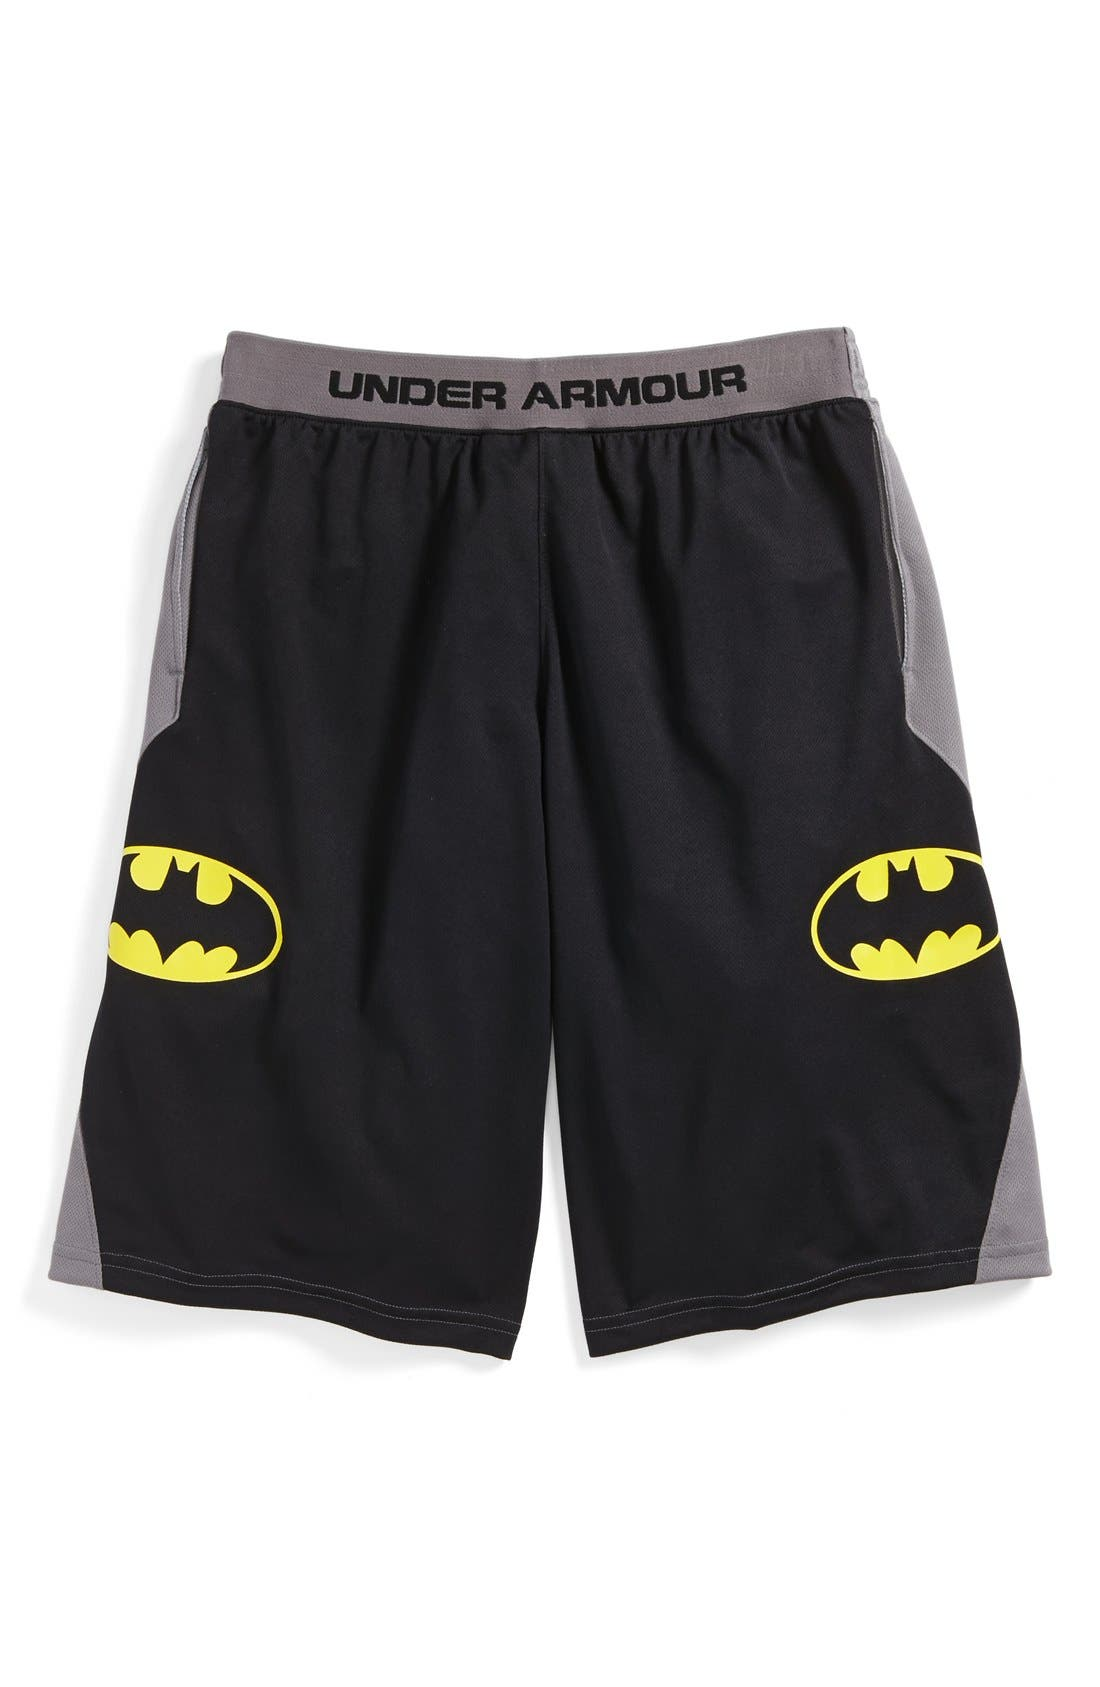 Main Image - Under Armour 'Alter Ego - Batman' Shorts (Little Boys & Big Boys)